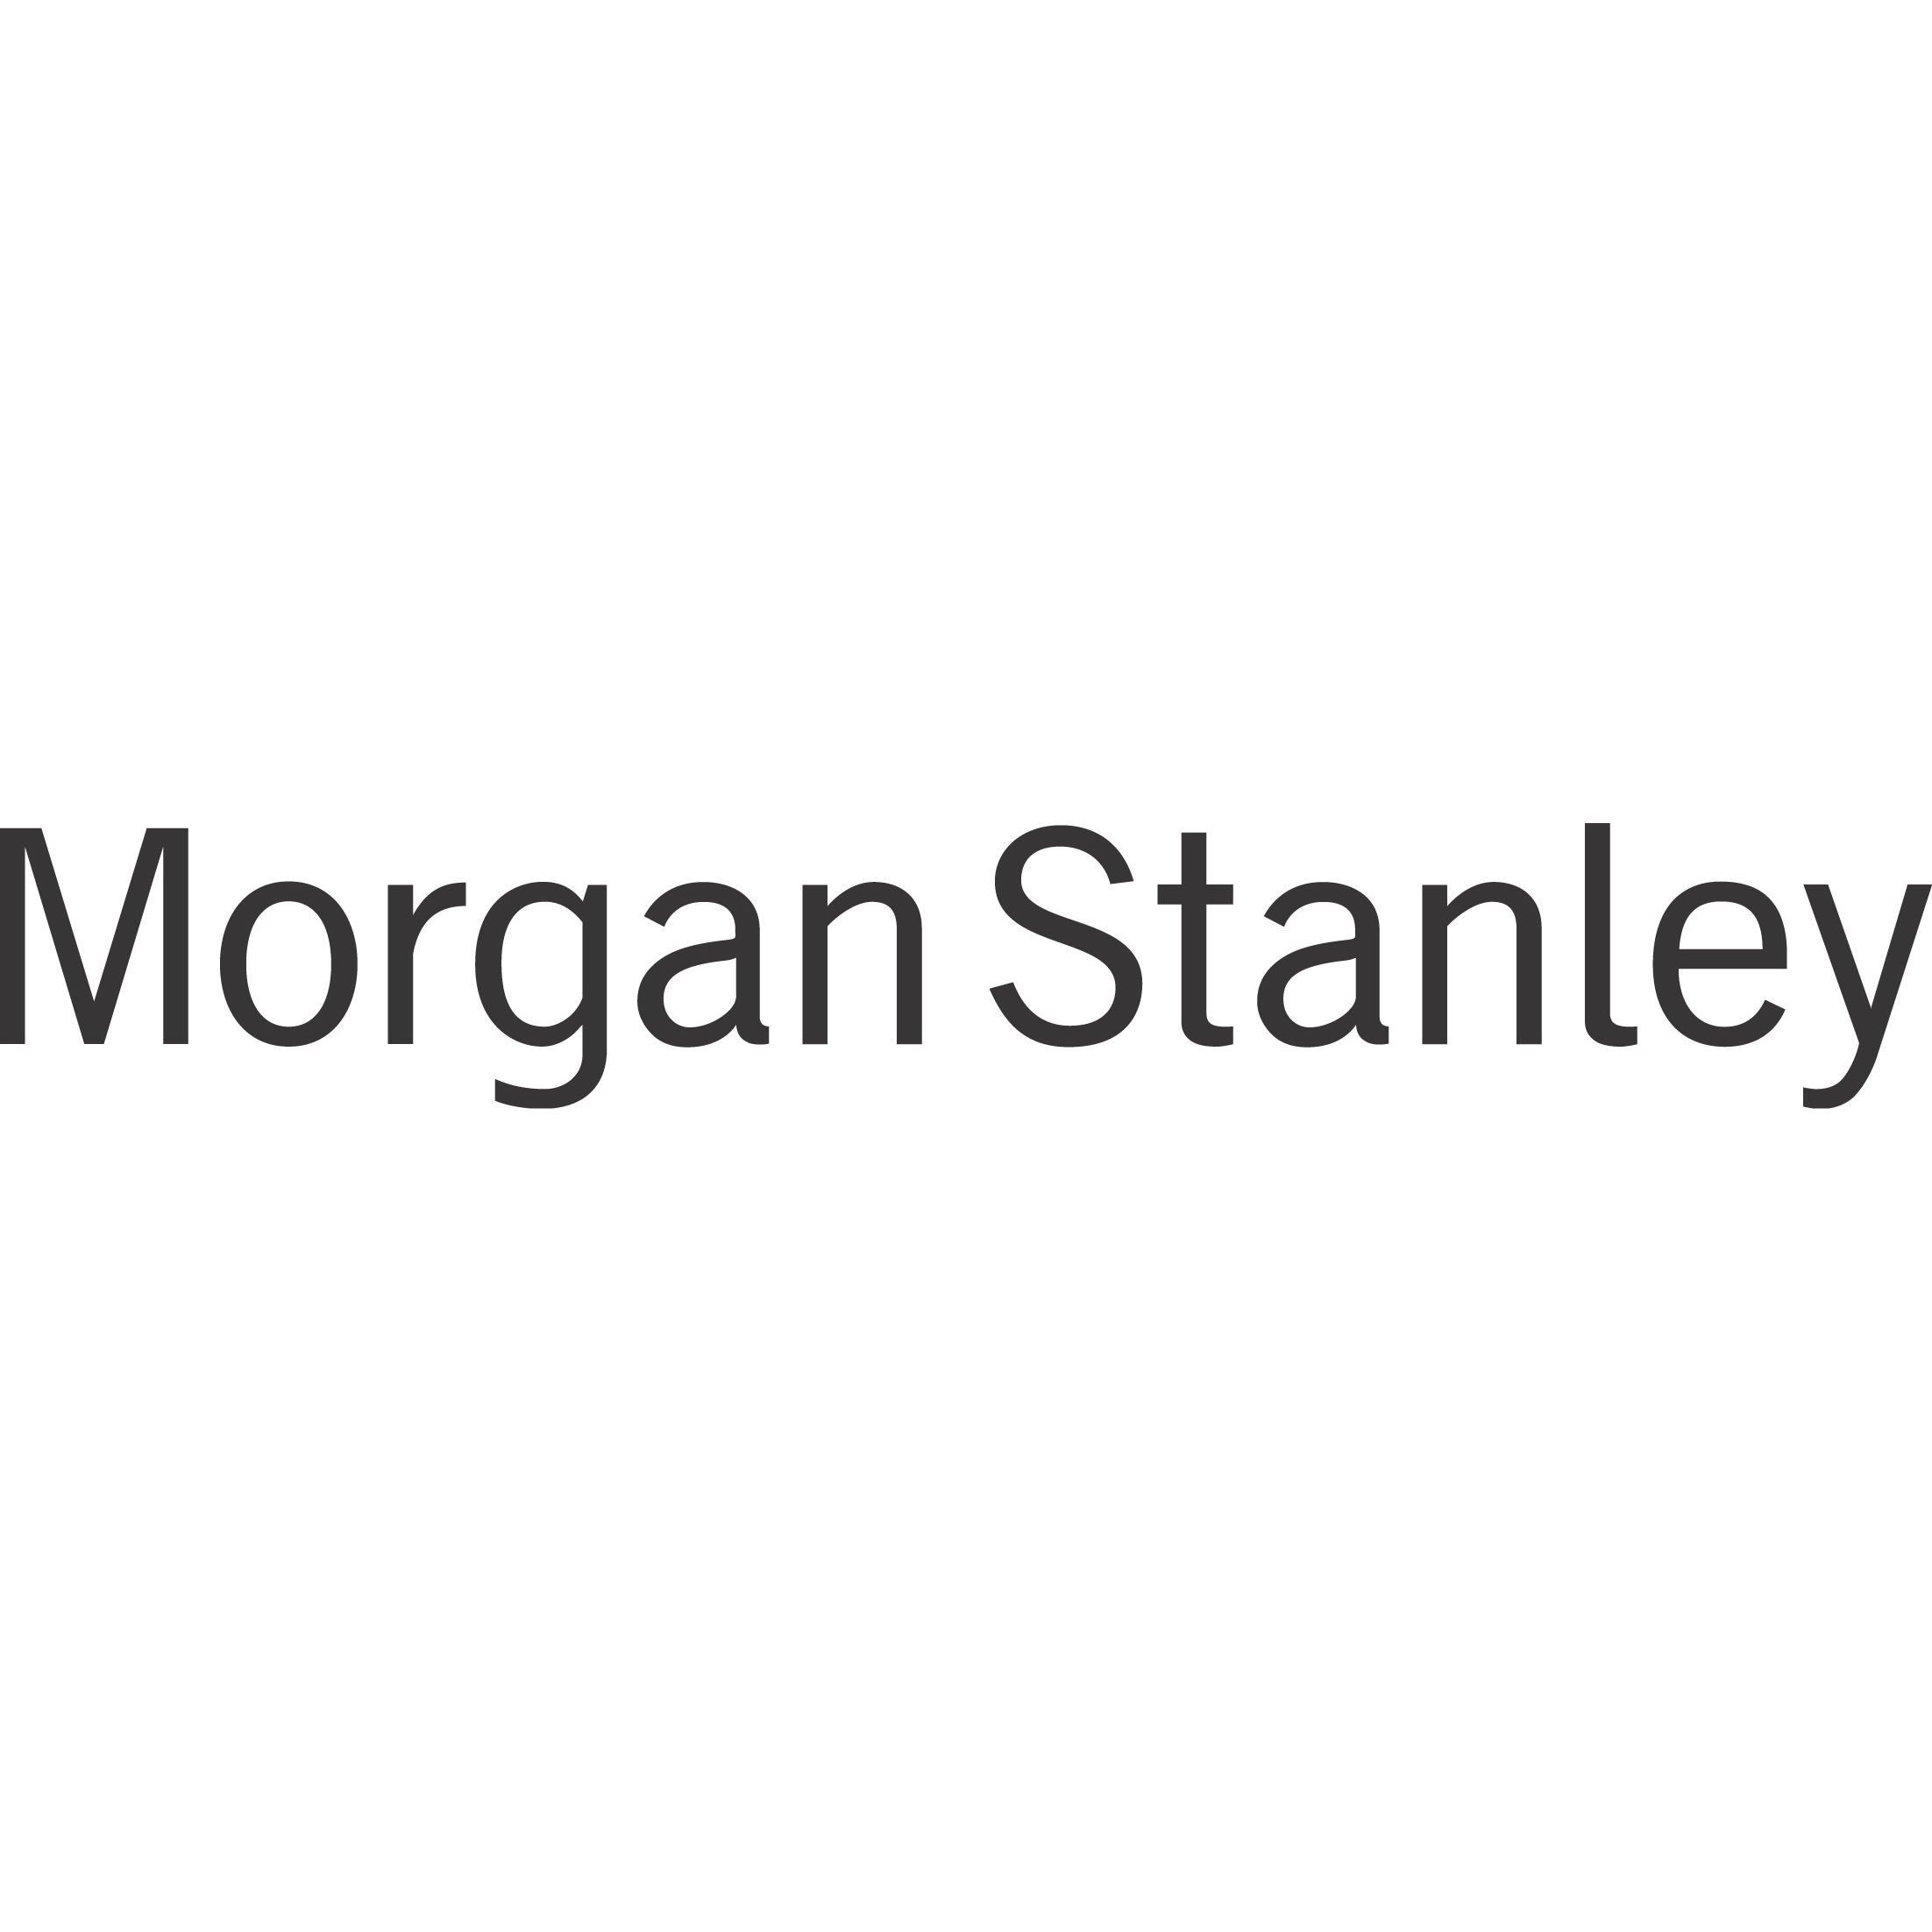 Dwight A Matheson - Morgan Stanley | Financial Advisor in Roseville,California